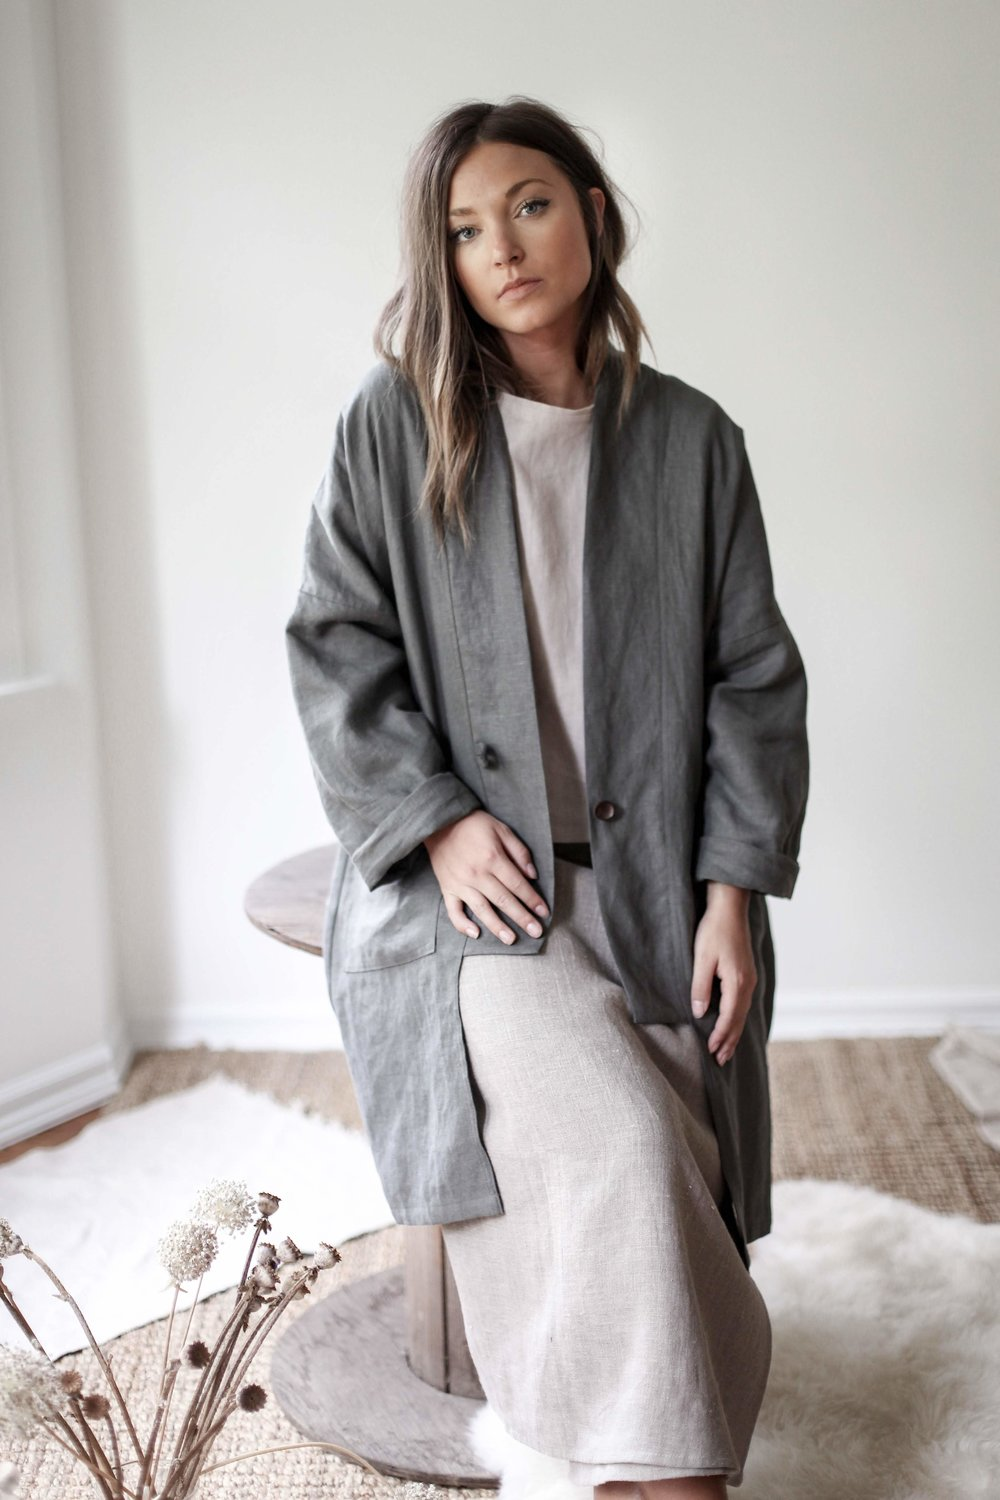 nomi-designs_kim-long-jacket_forest-colored_natural-linen-long-sleeve-jacket_front-styled.jpg